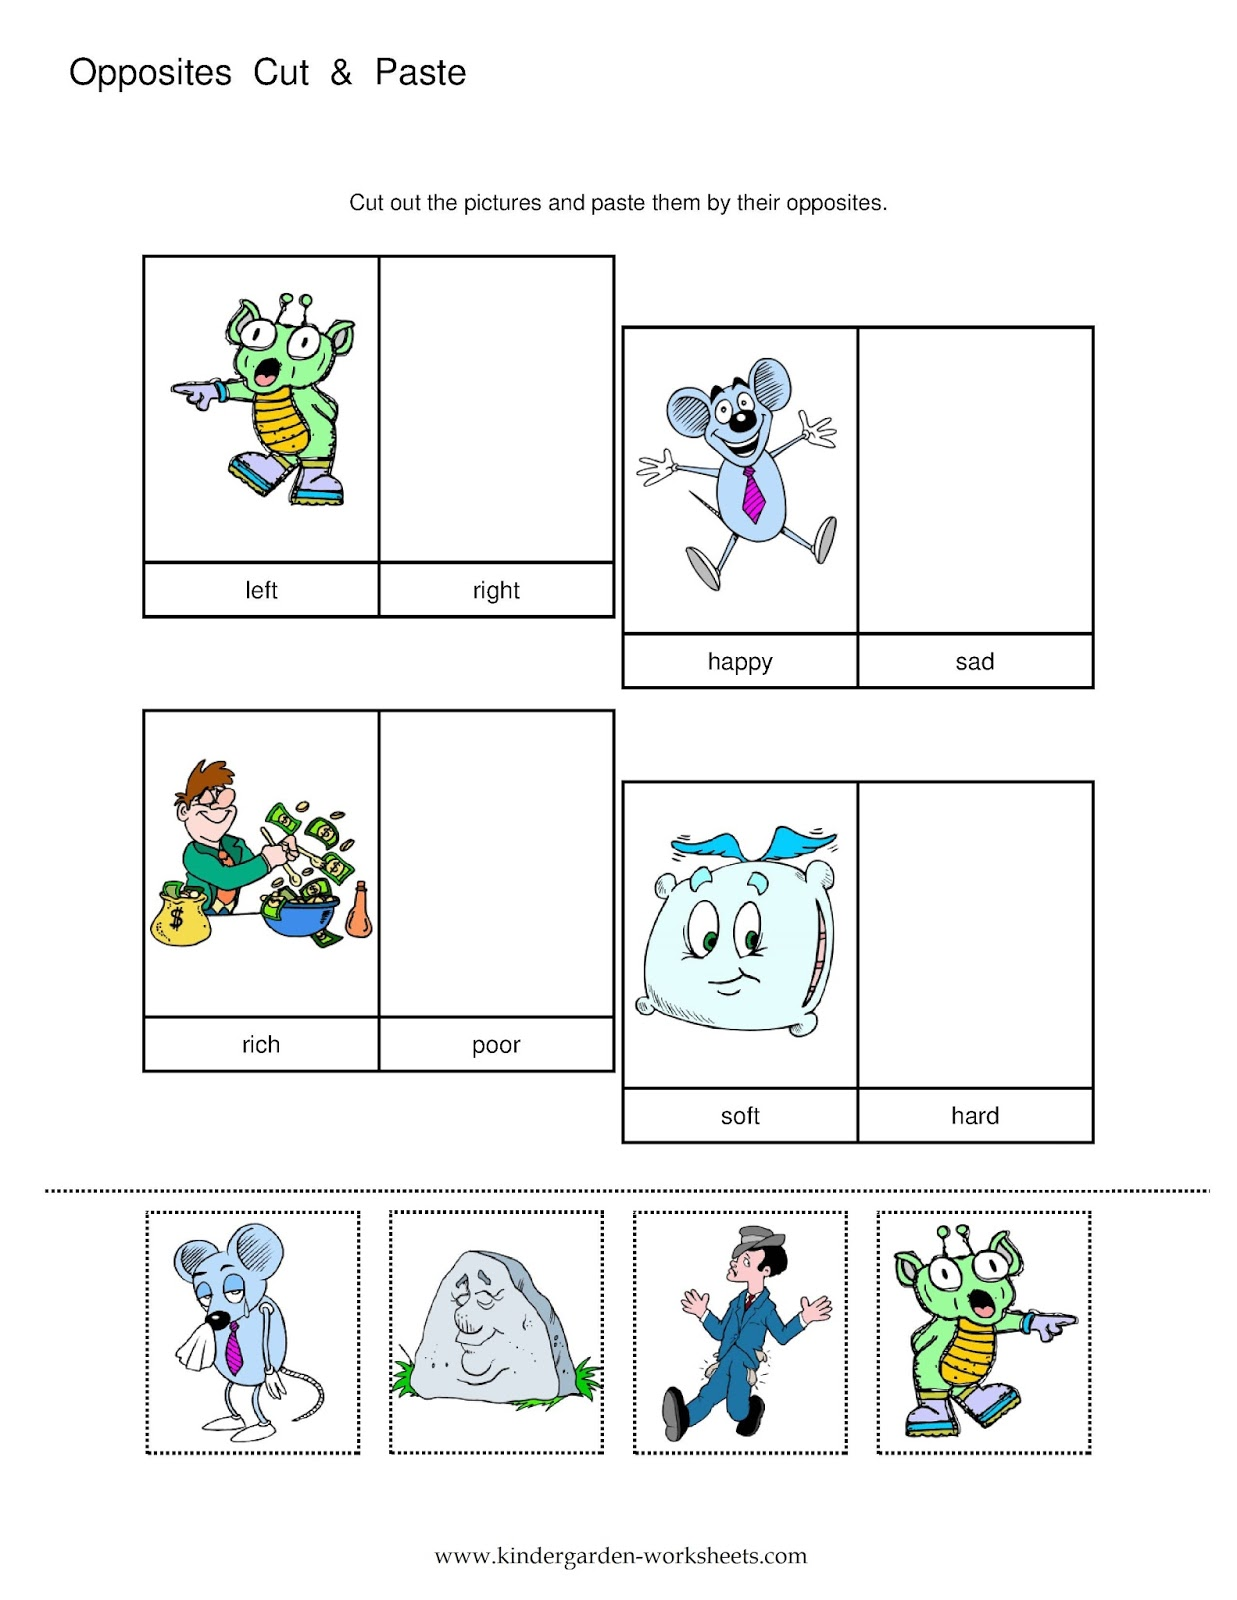 Kindergarten Worksheets Kindergarten Worksheets Opposite Words – Cut and Paste Addition Worksheets